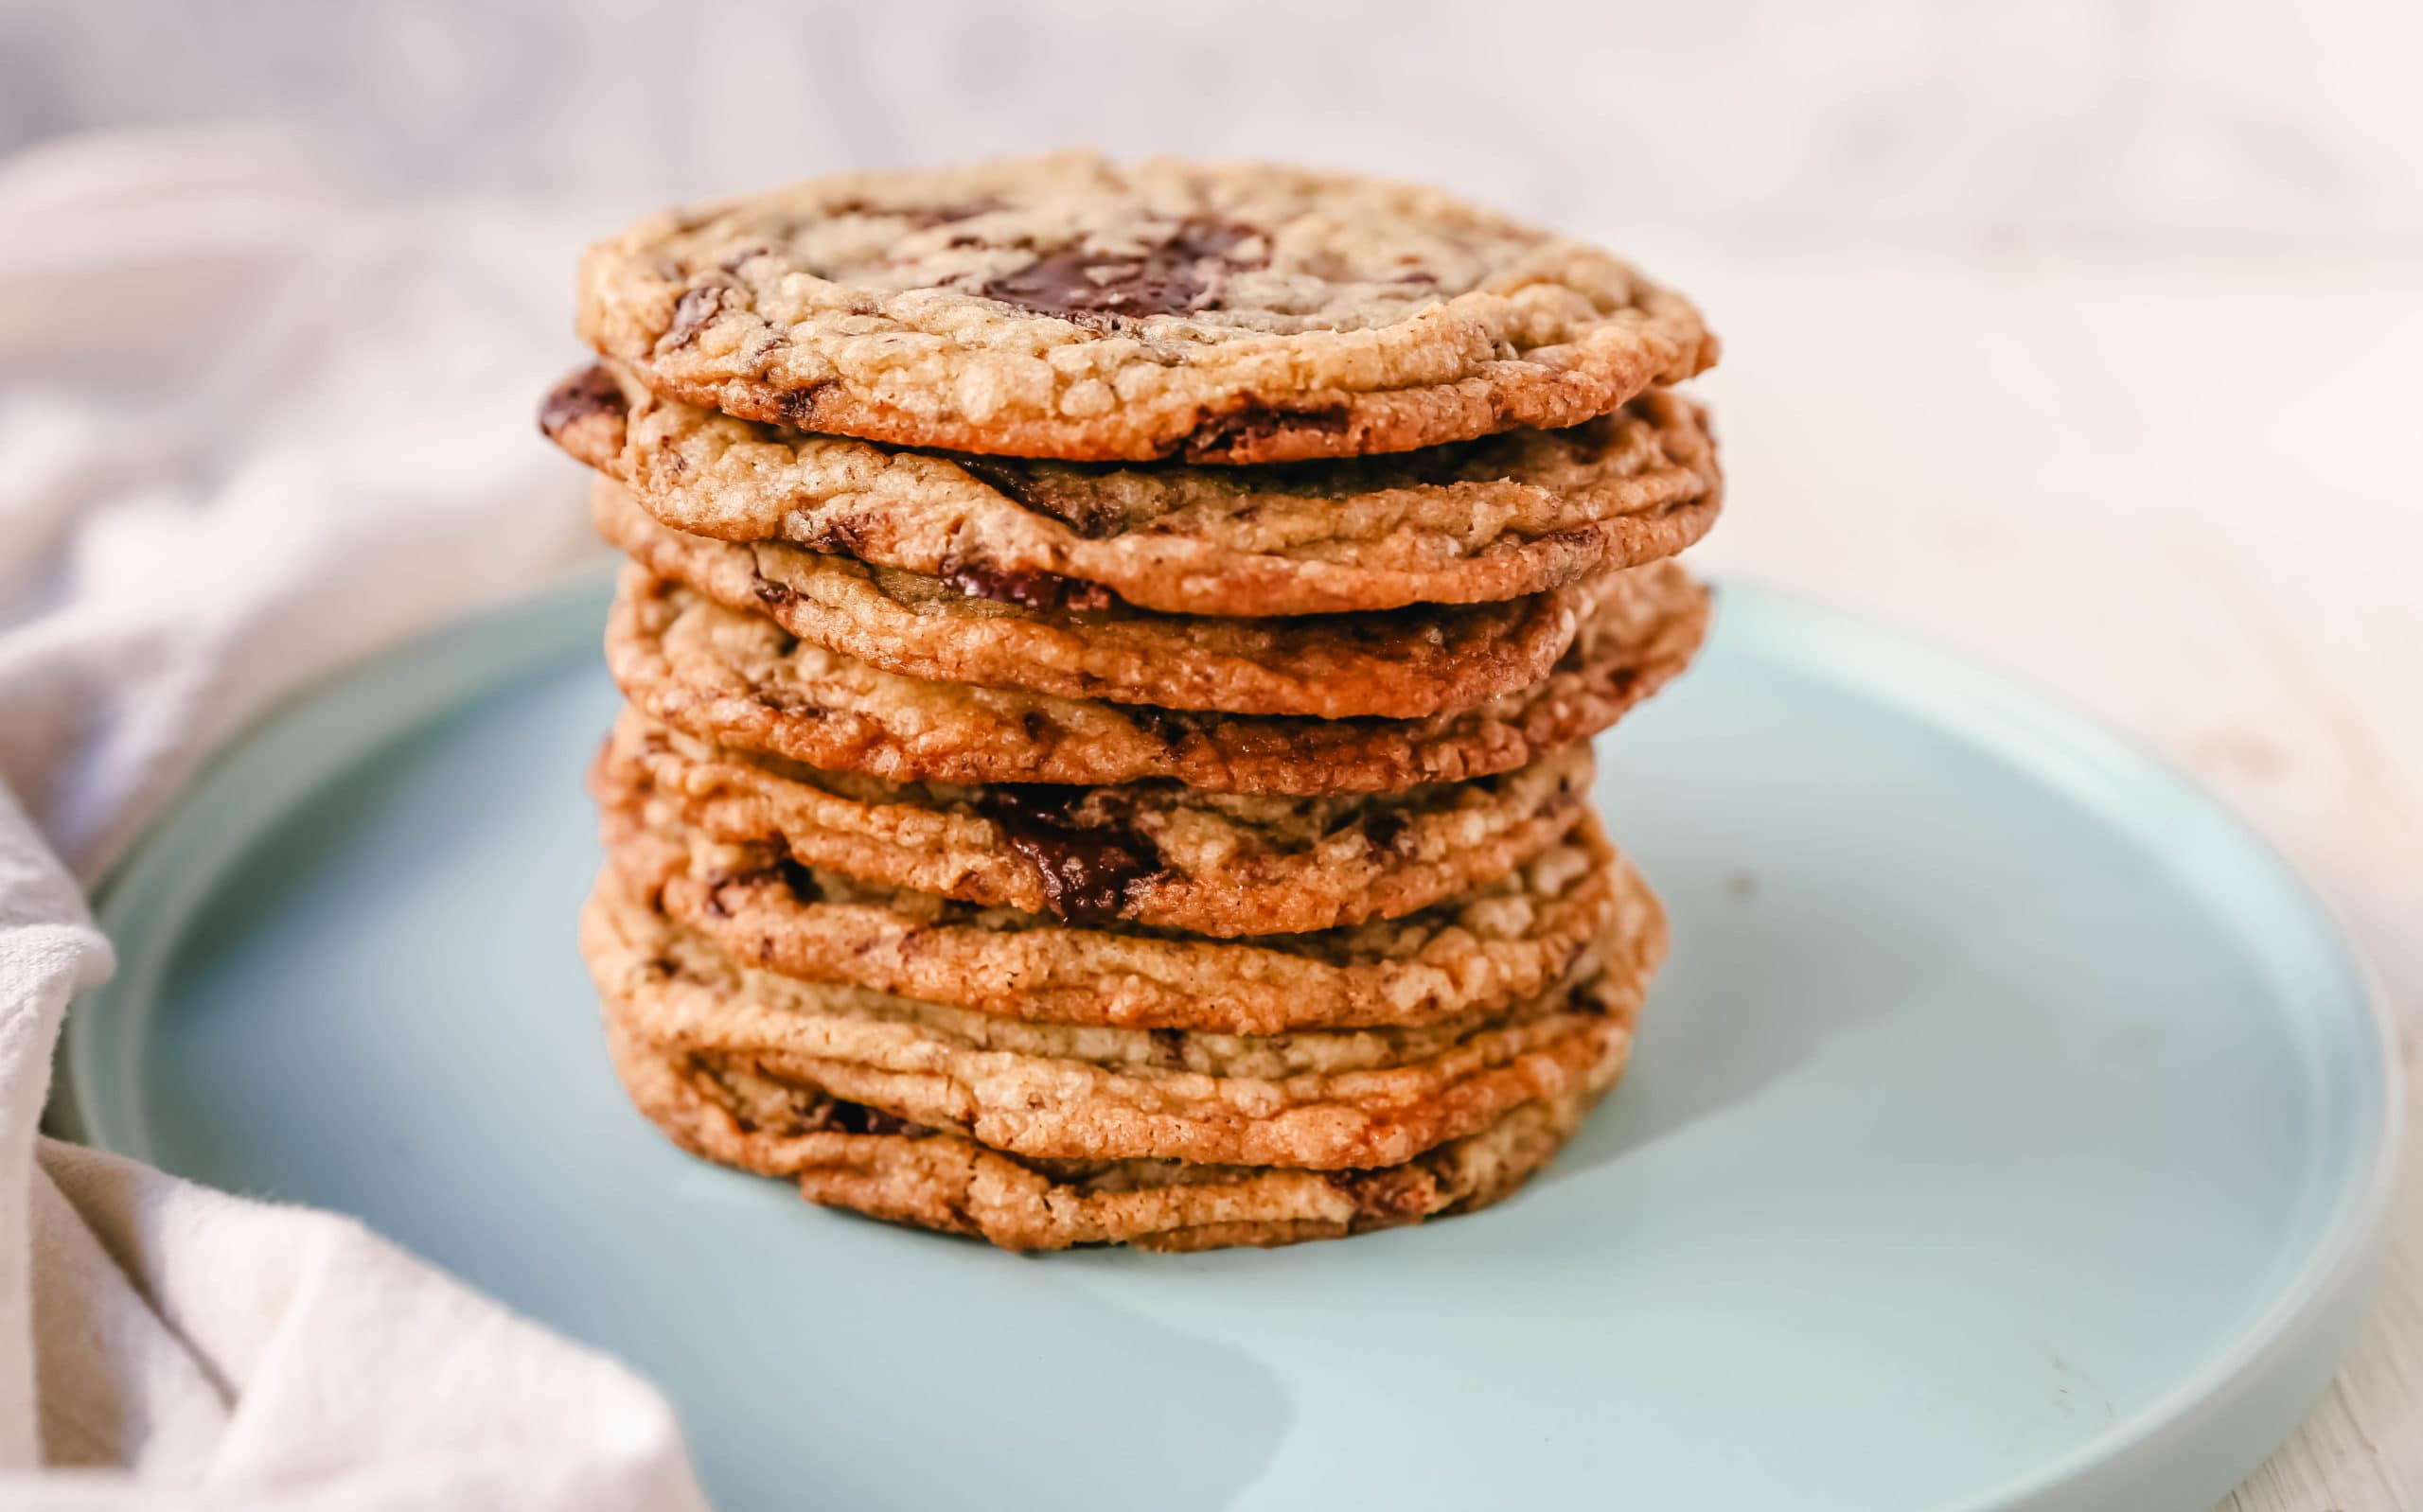 Pan Banging Chocolate Chip Cookies The famous pan banging chocolate chip cookies are thin and crispy with decadent melted dark chocolate and buttery, crispy edges and a chewy center.www.modernhoney.com #cookie #cookies #chocolatechipcookies #panbanging #panbangingcookies